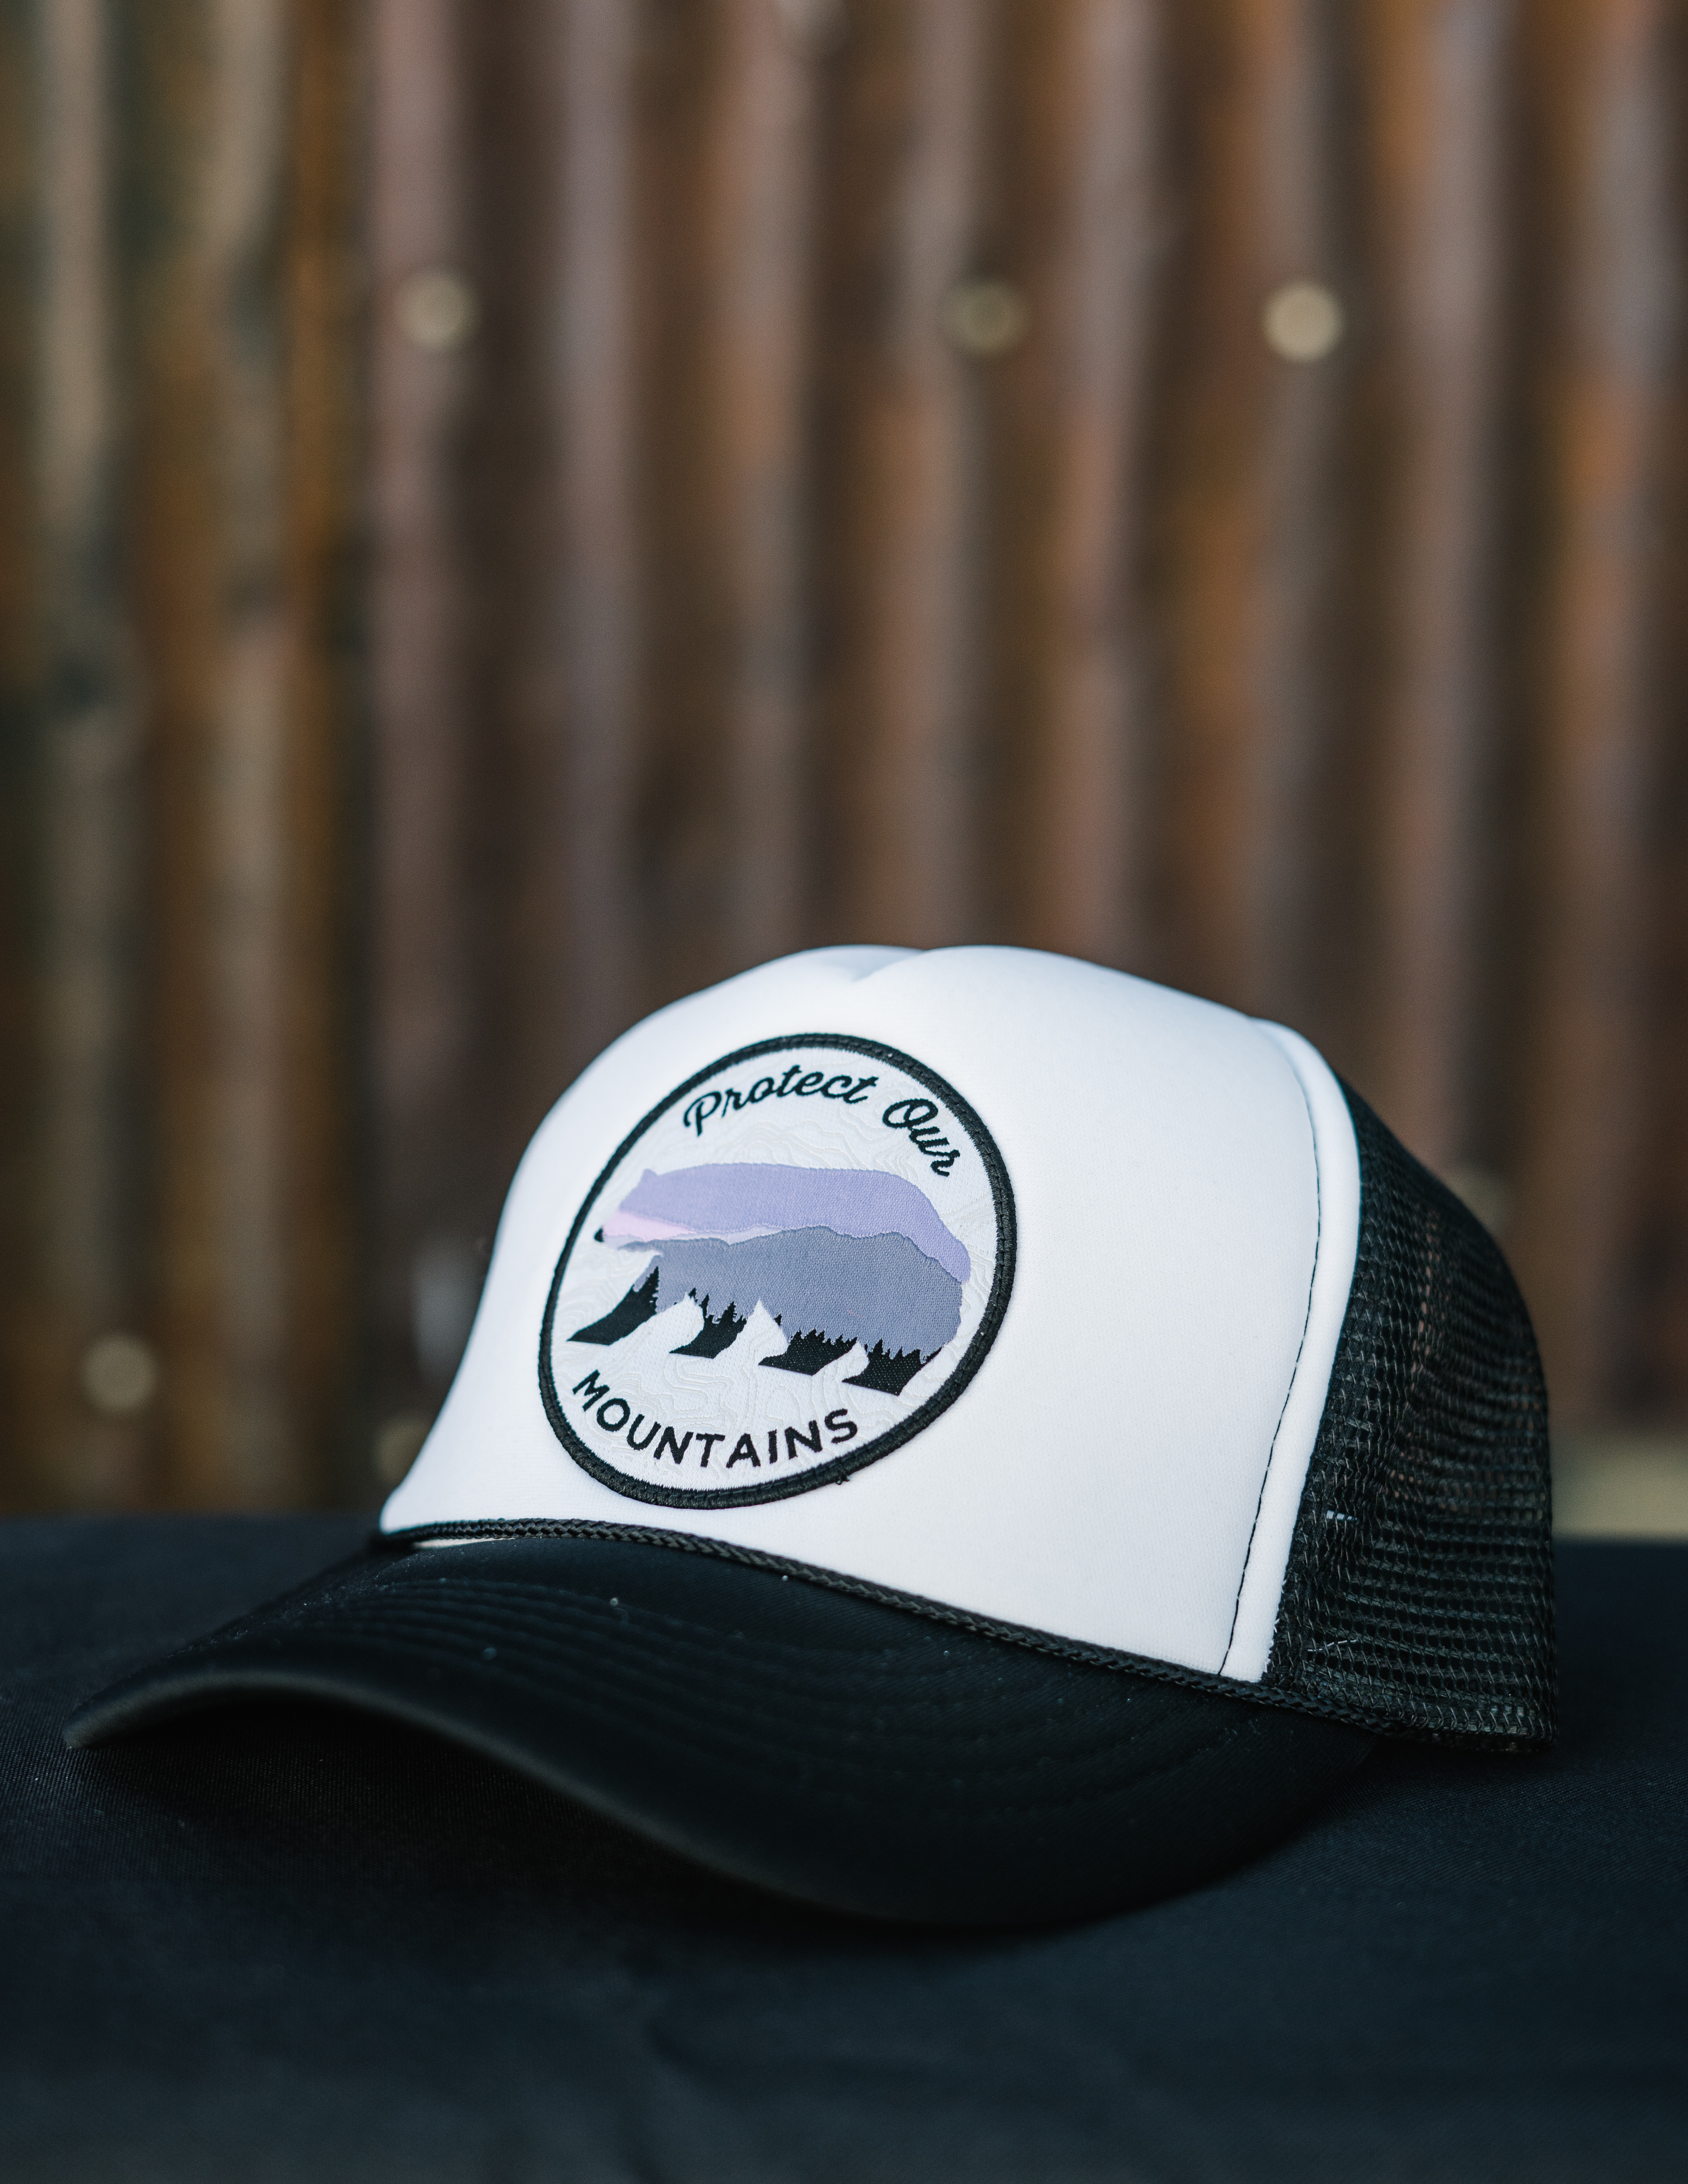 Protect Our Mountains Trucker Hat